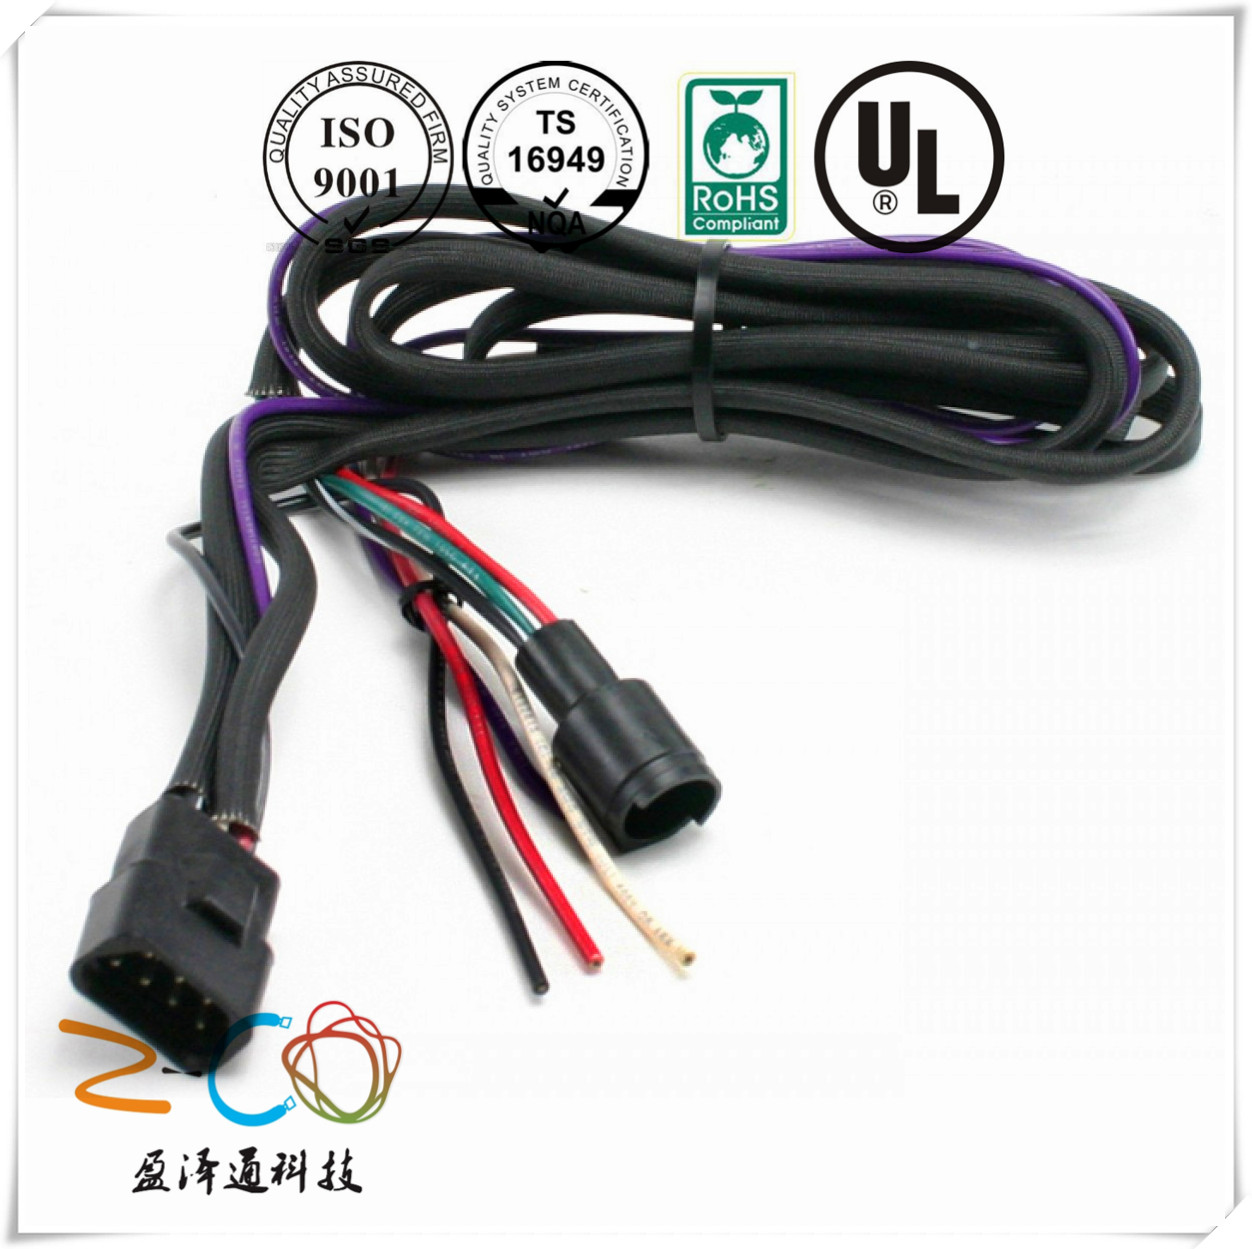 Good Quality Wire Harness And Cable Assembly Manufacturer From China Automotive Wiring Connector Harnesszco0096